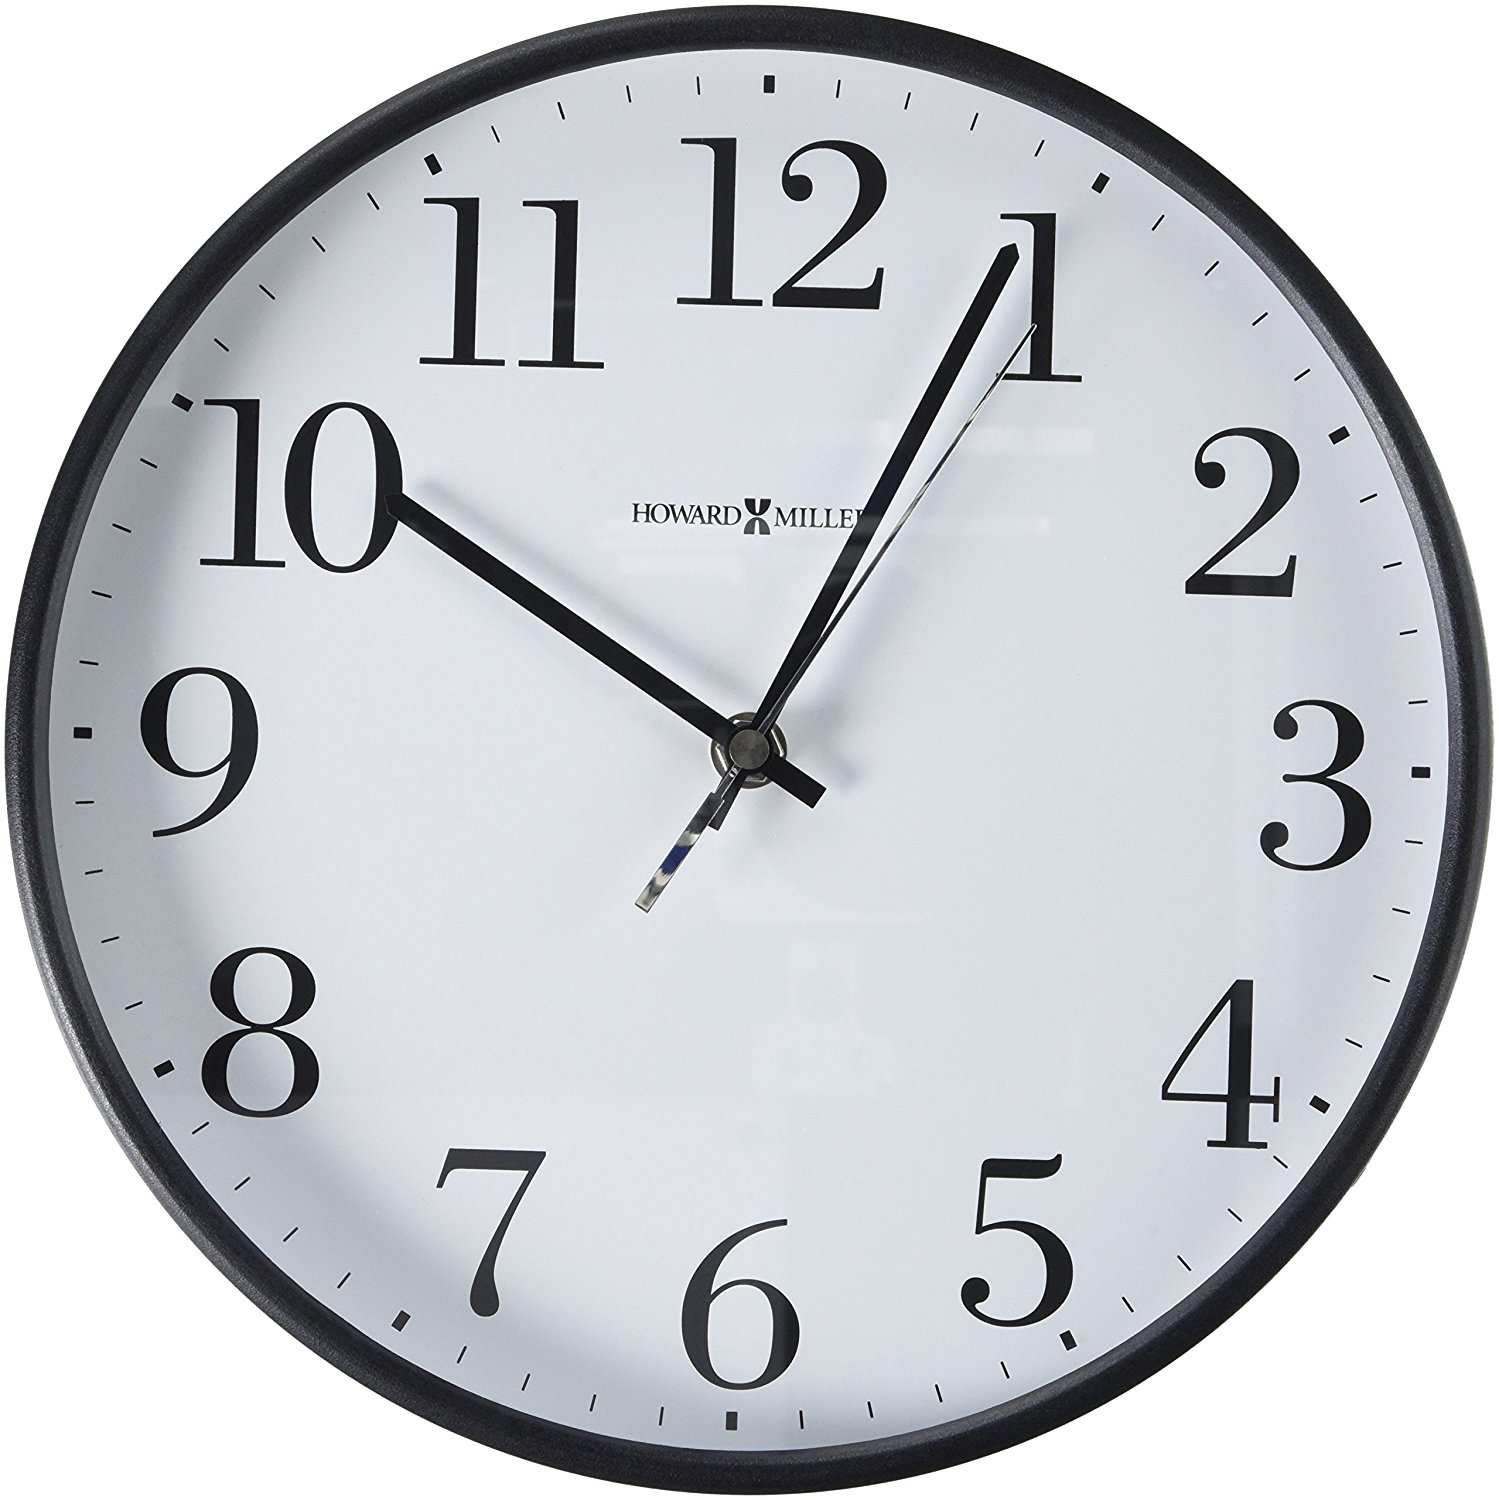 625-254 Office Mate Wall Clock by By Howard Miller by